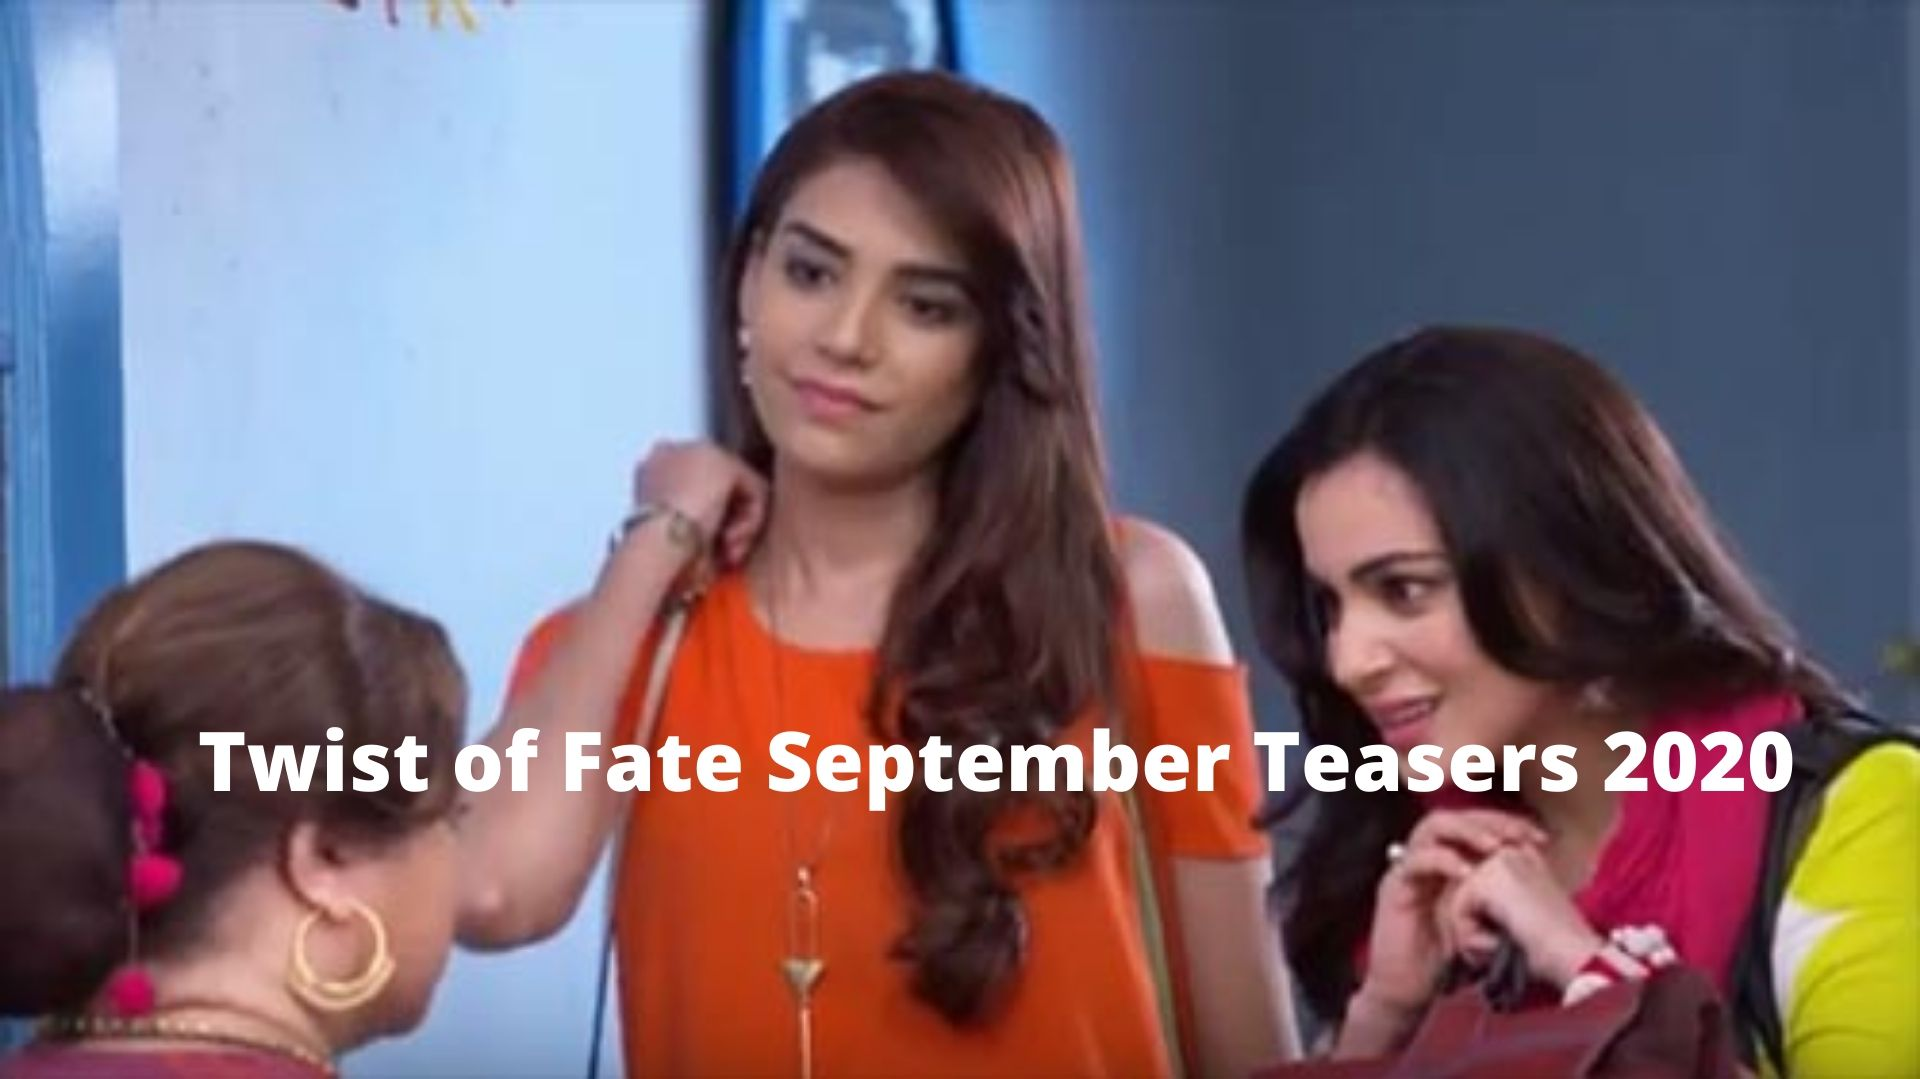 Twist of Fate september Teasers 2020